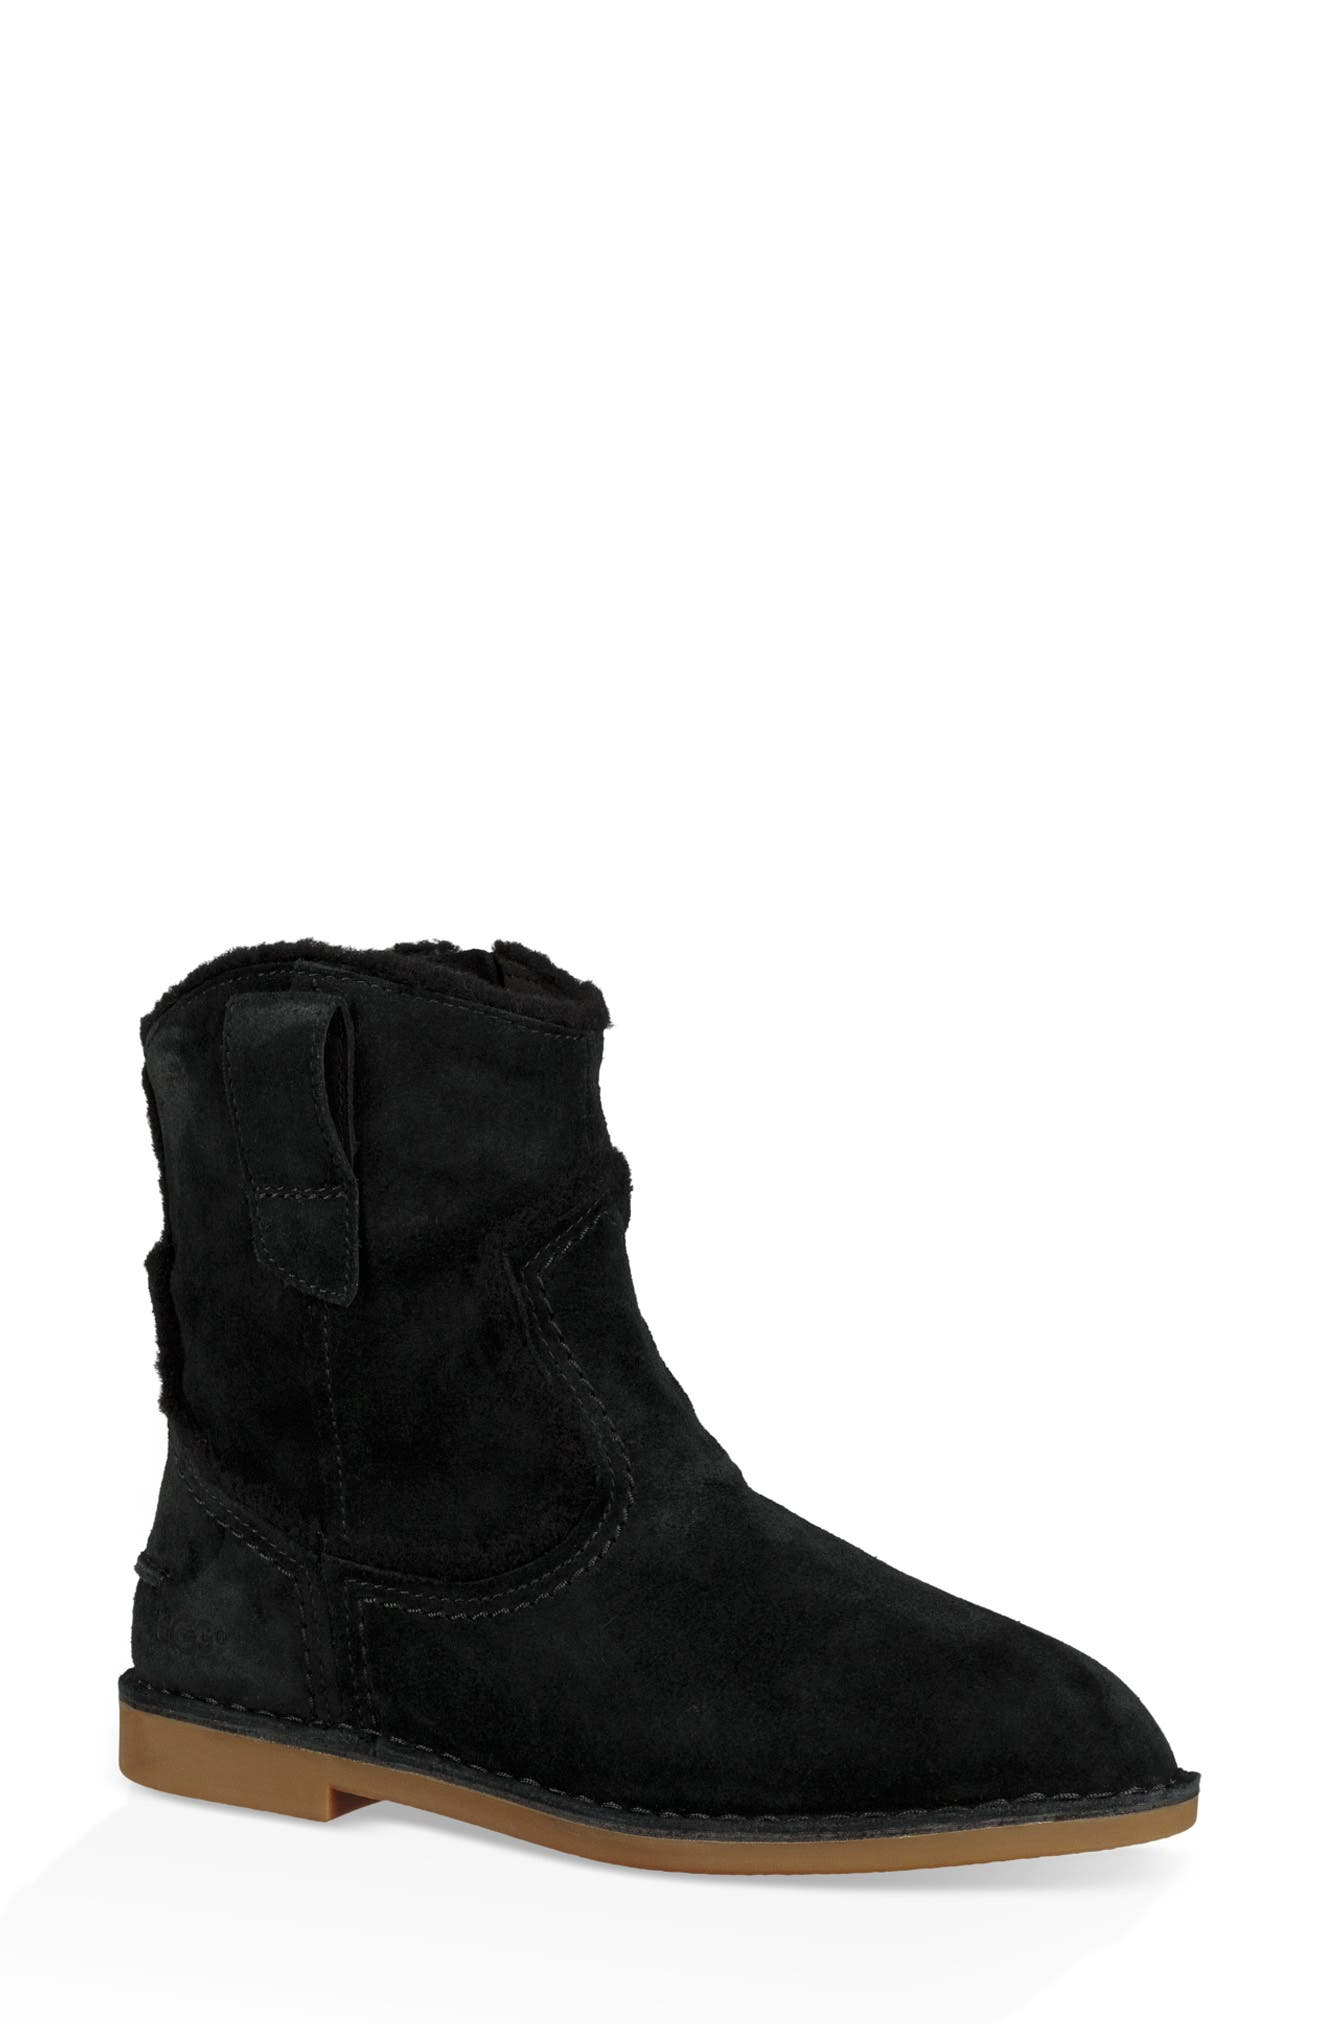 Catica Boot,                             Main thumbnail 1, color,                             BLACK SUEDE